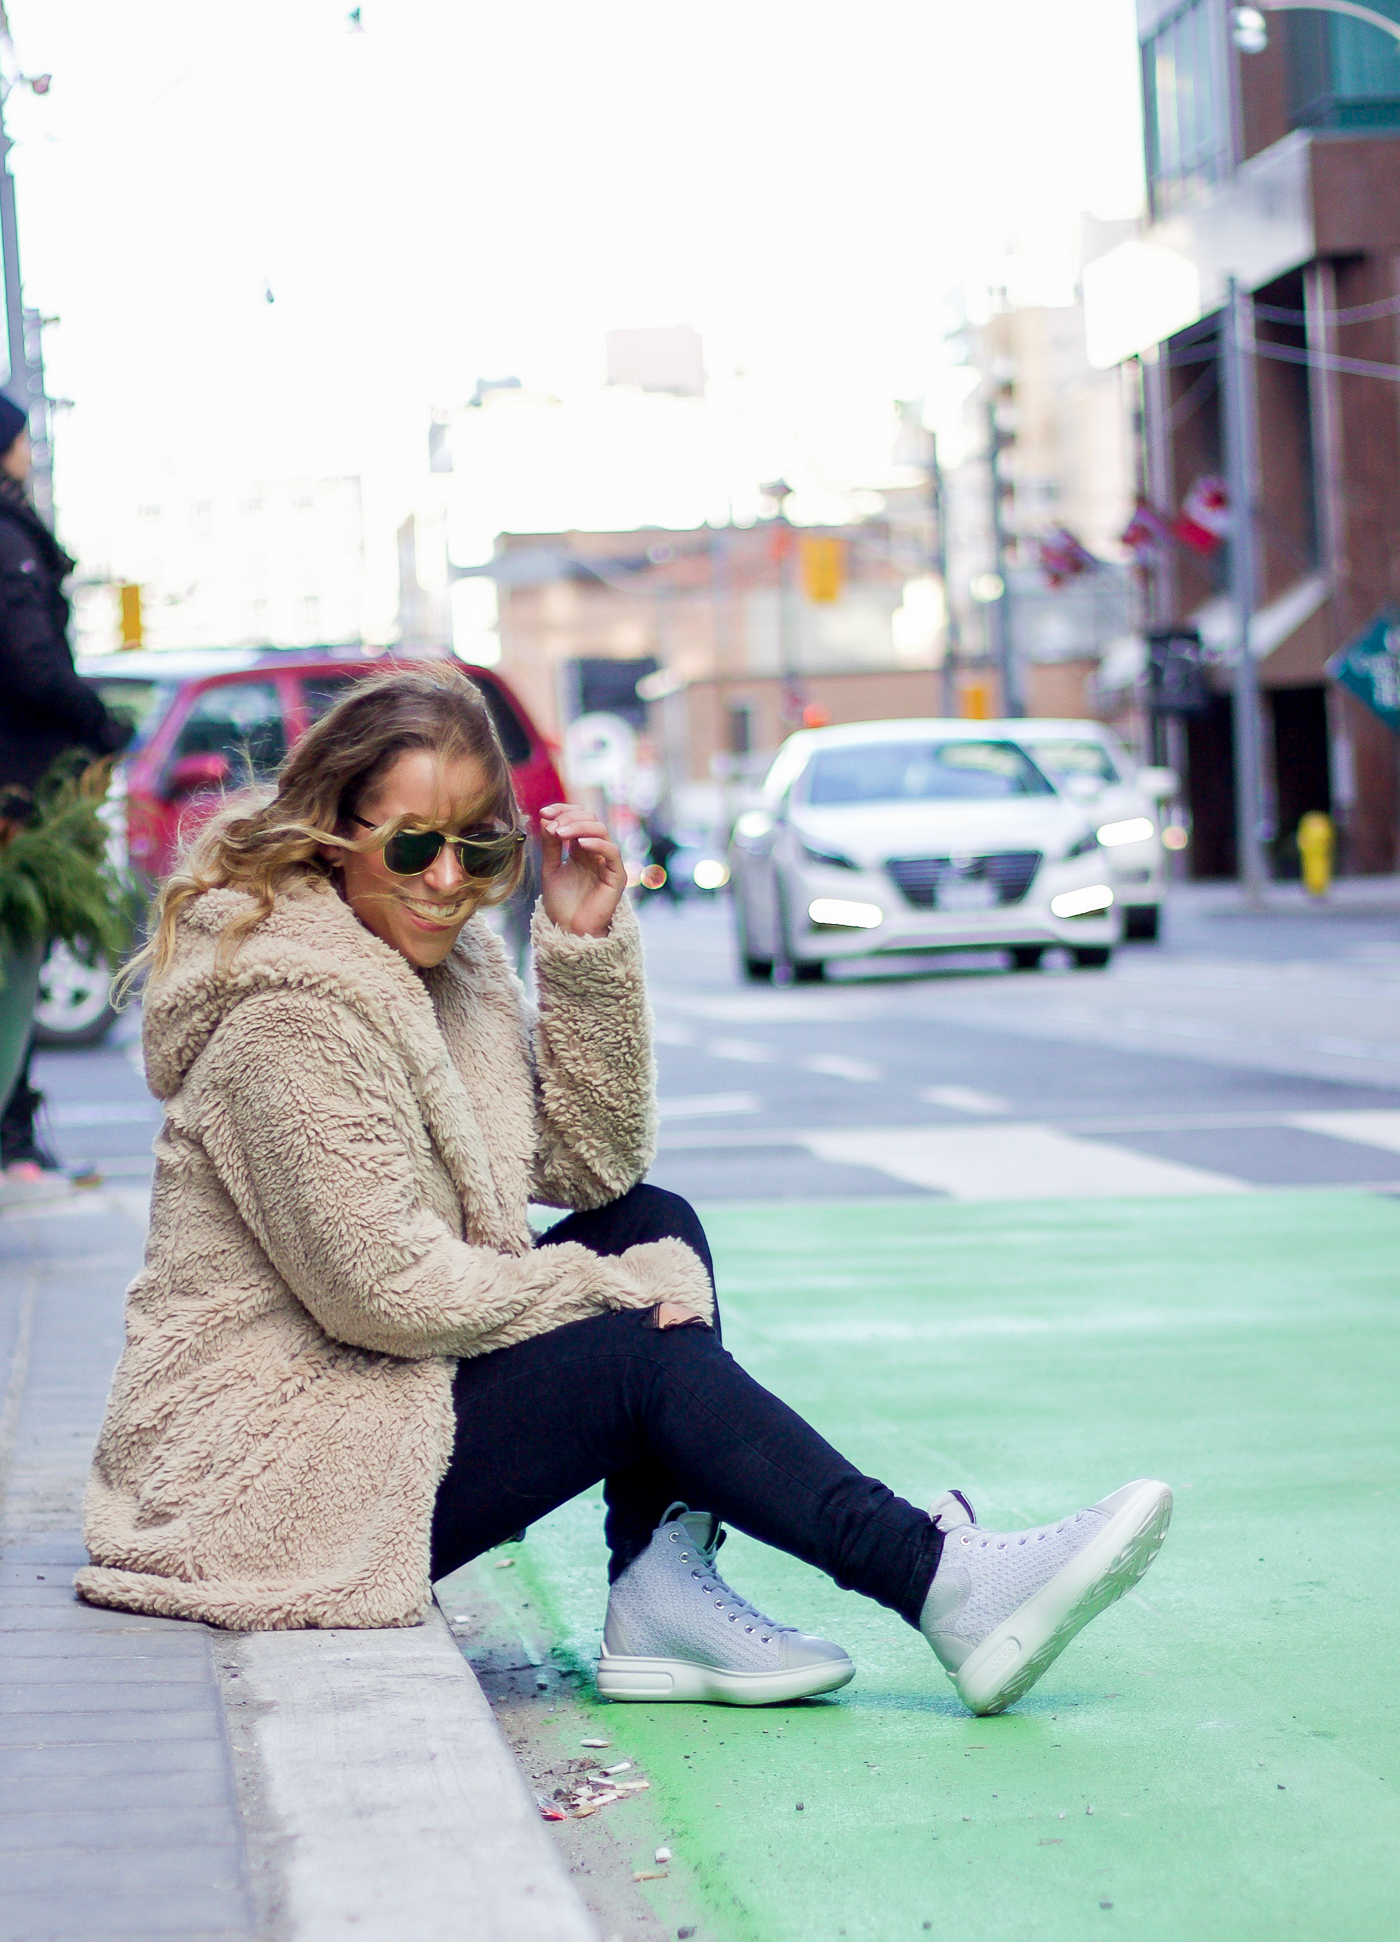 Jackie Goldhar is a Canadian Life and Style blogger, and she's sharing winter outfit inspiration, with a Gap hooded jacket and Ecco High Top Sneakers